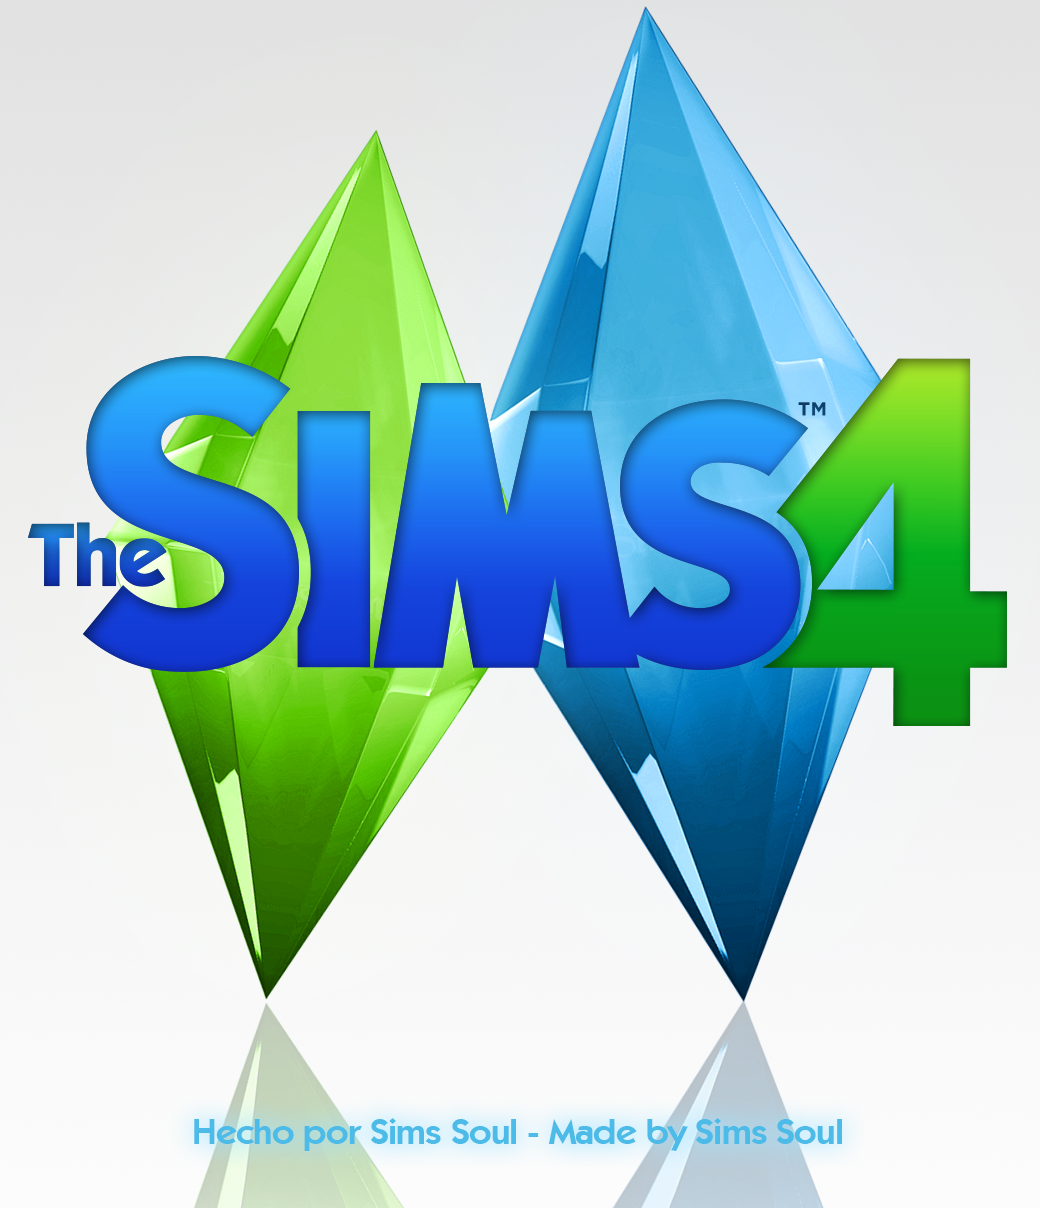 Sims is a game that is extensively popular around the